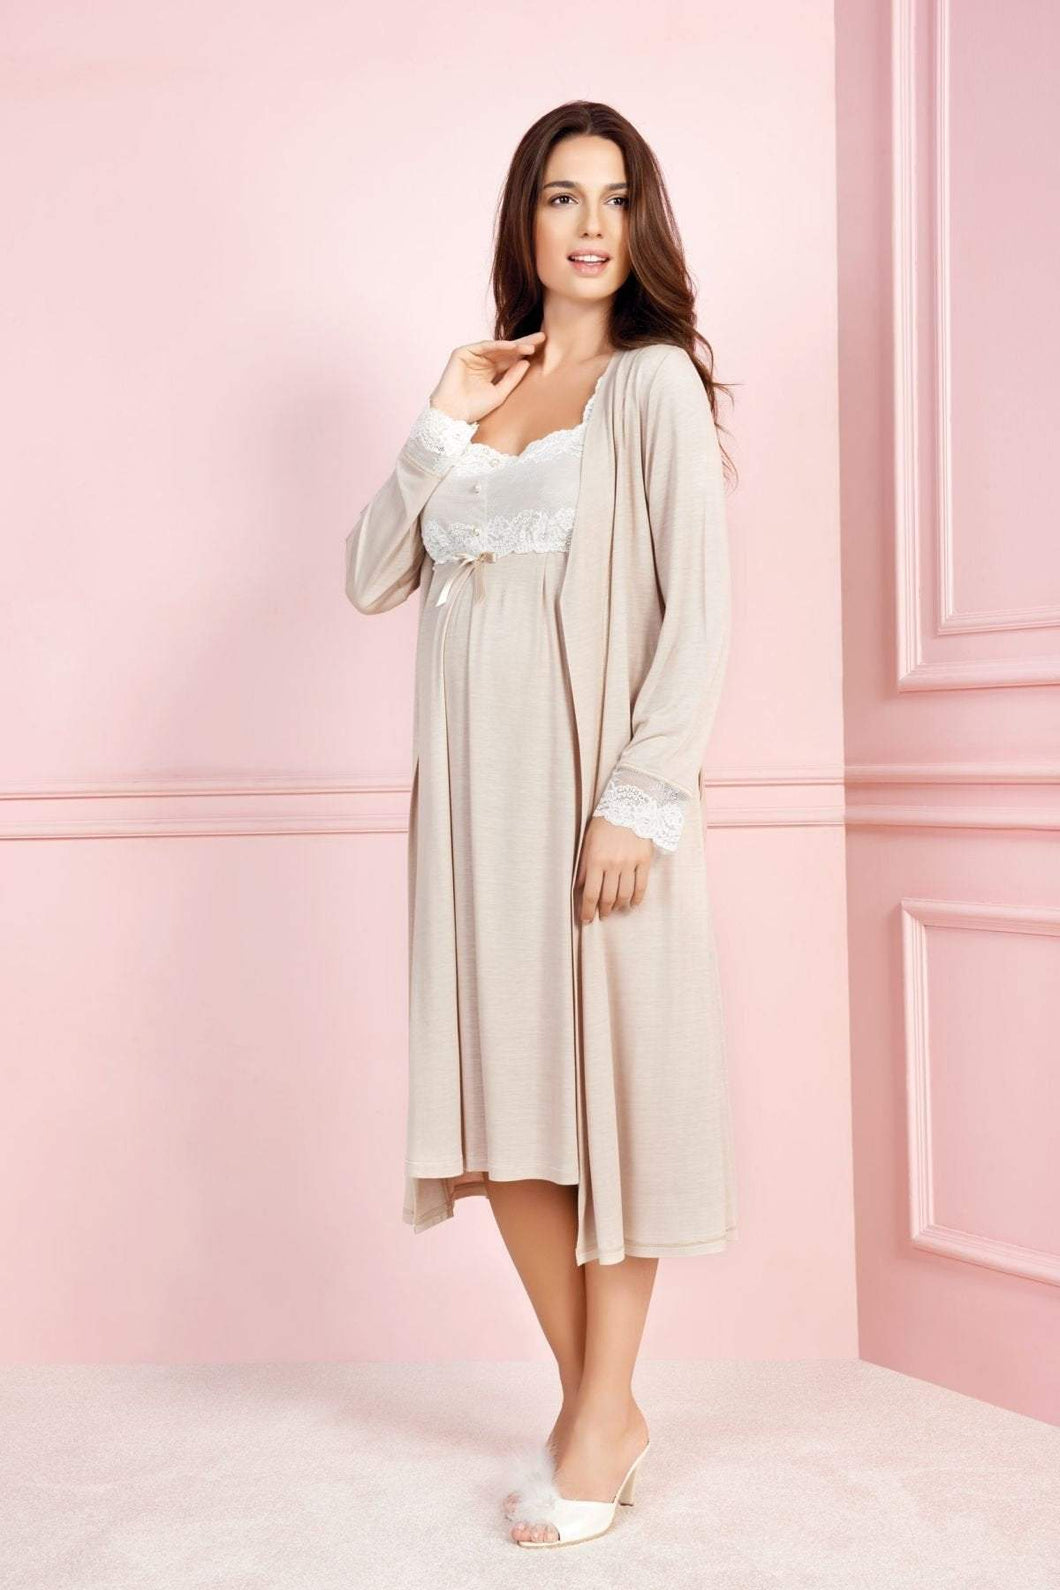 2 Piece Maternity,Nursing Nightgown Pajama Set Featuring Dress w/Lace, Pearl Details, Matching Robe with Belt